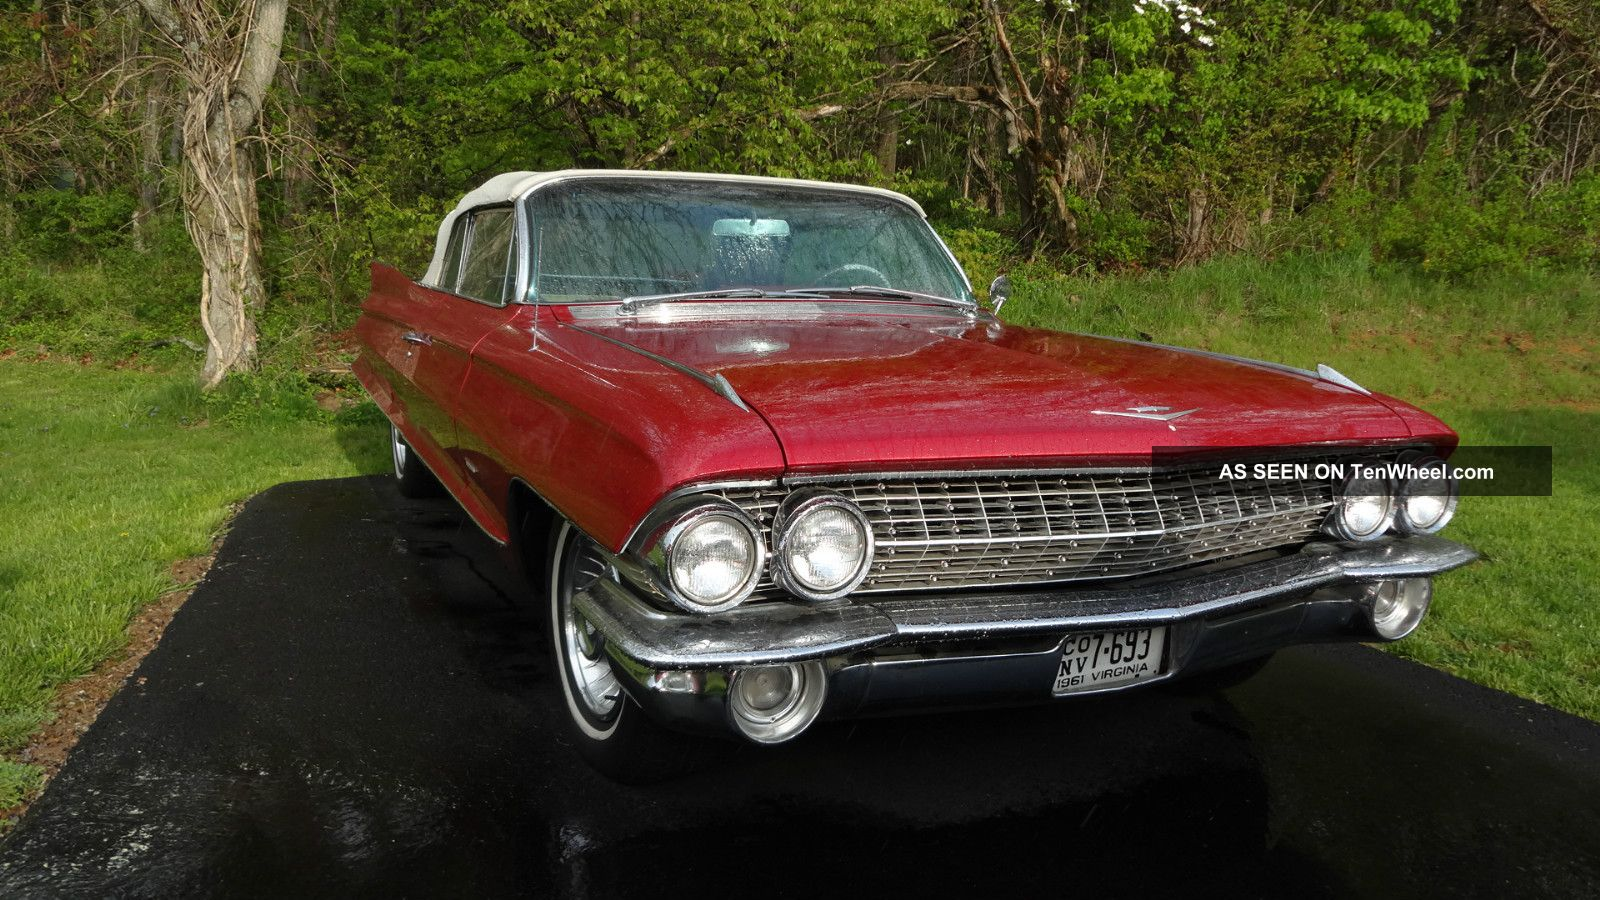 1961 Cadillac Series 62 - Convertible Other photo